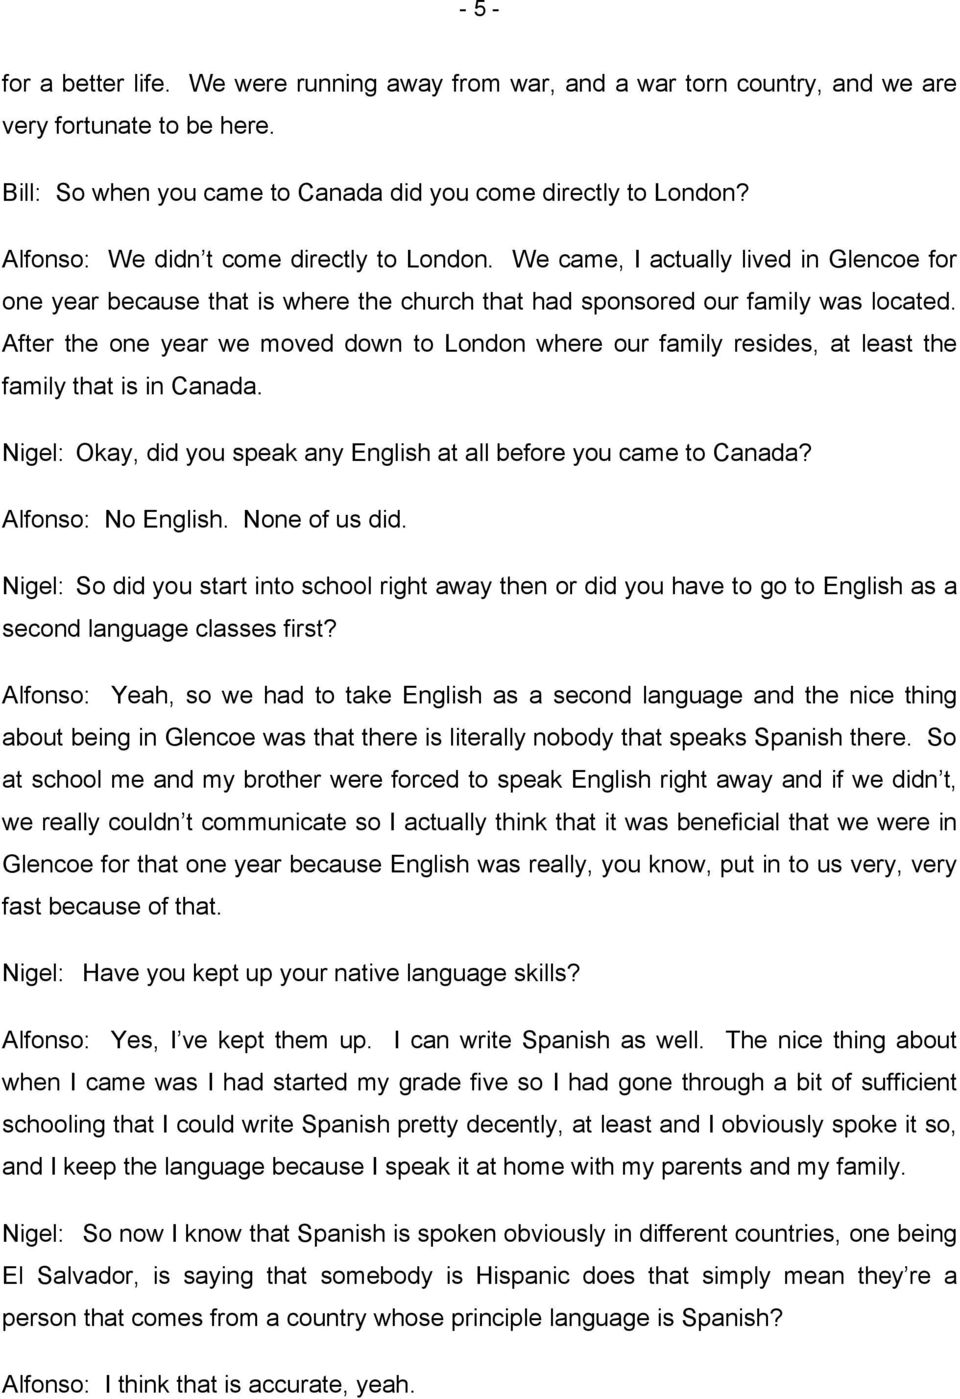 After the one year we moved down to London where our family resides, at least the family that is in Canada. Nigel: Okay, did you speak any English at all before you came to Canada?